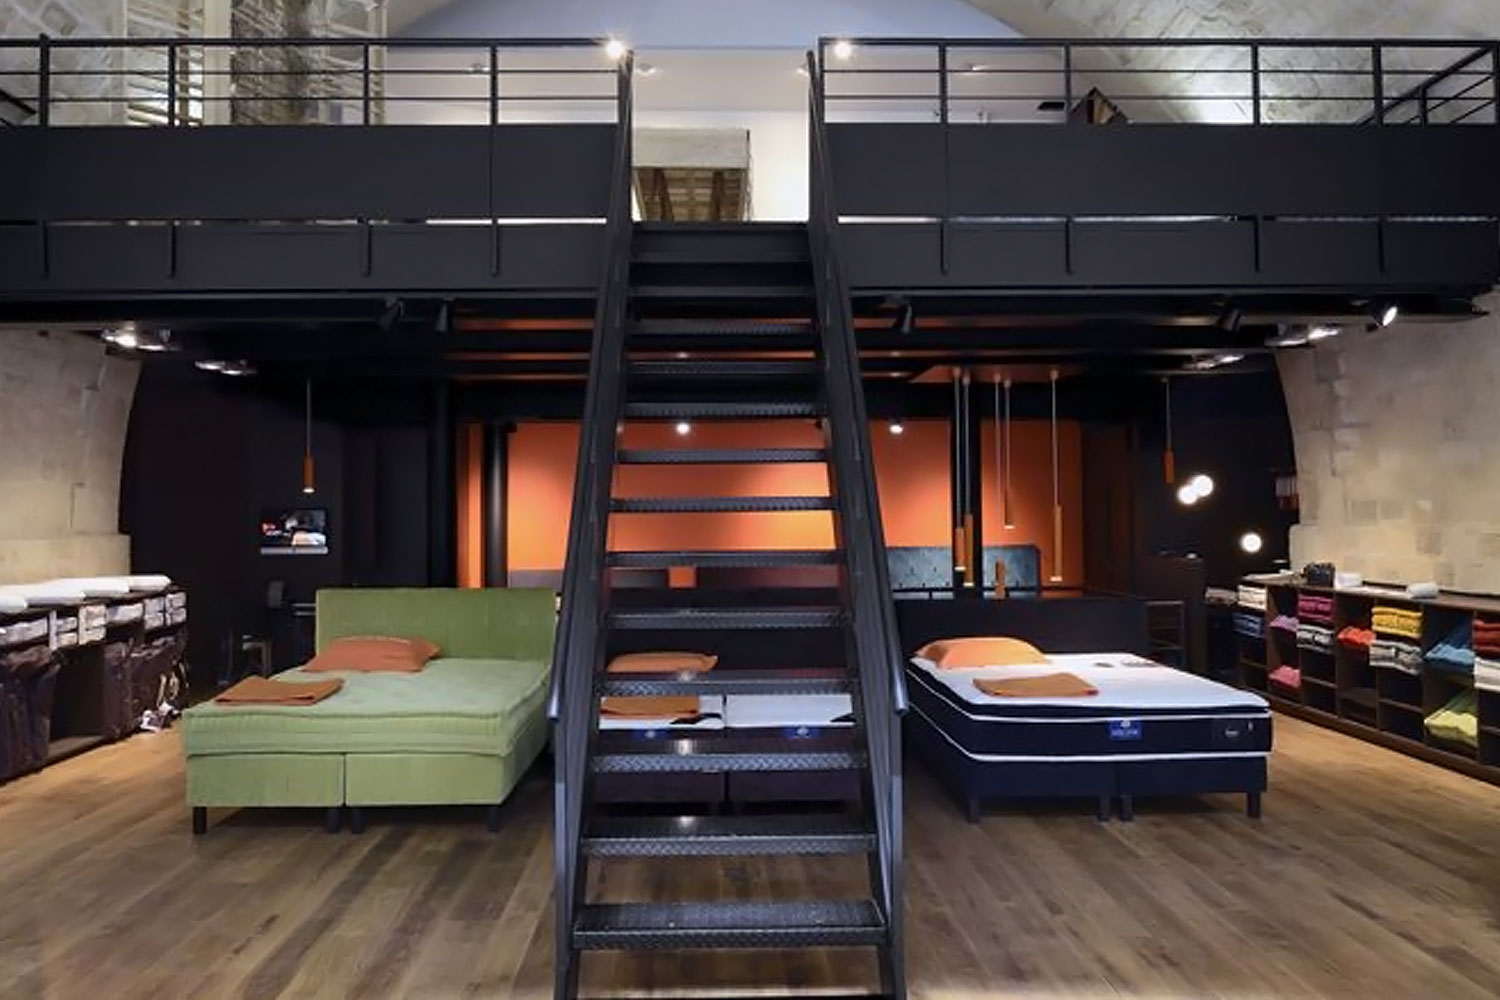 mon lit et moi cr ation fabrication et vente de matelas. Black Bedroom Furniture Sets. Home Design Ideas